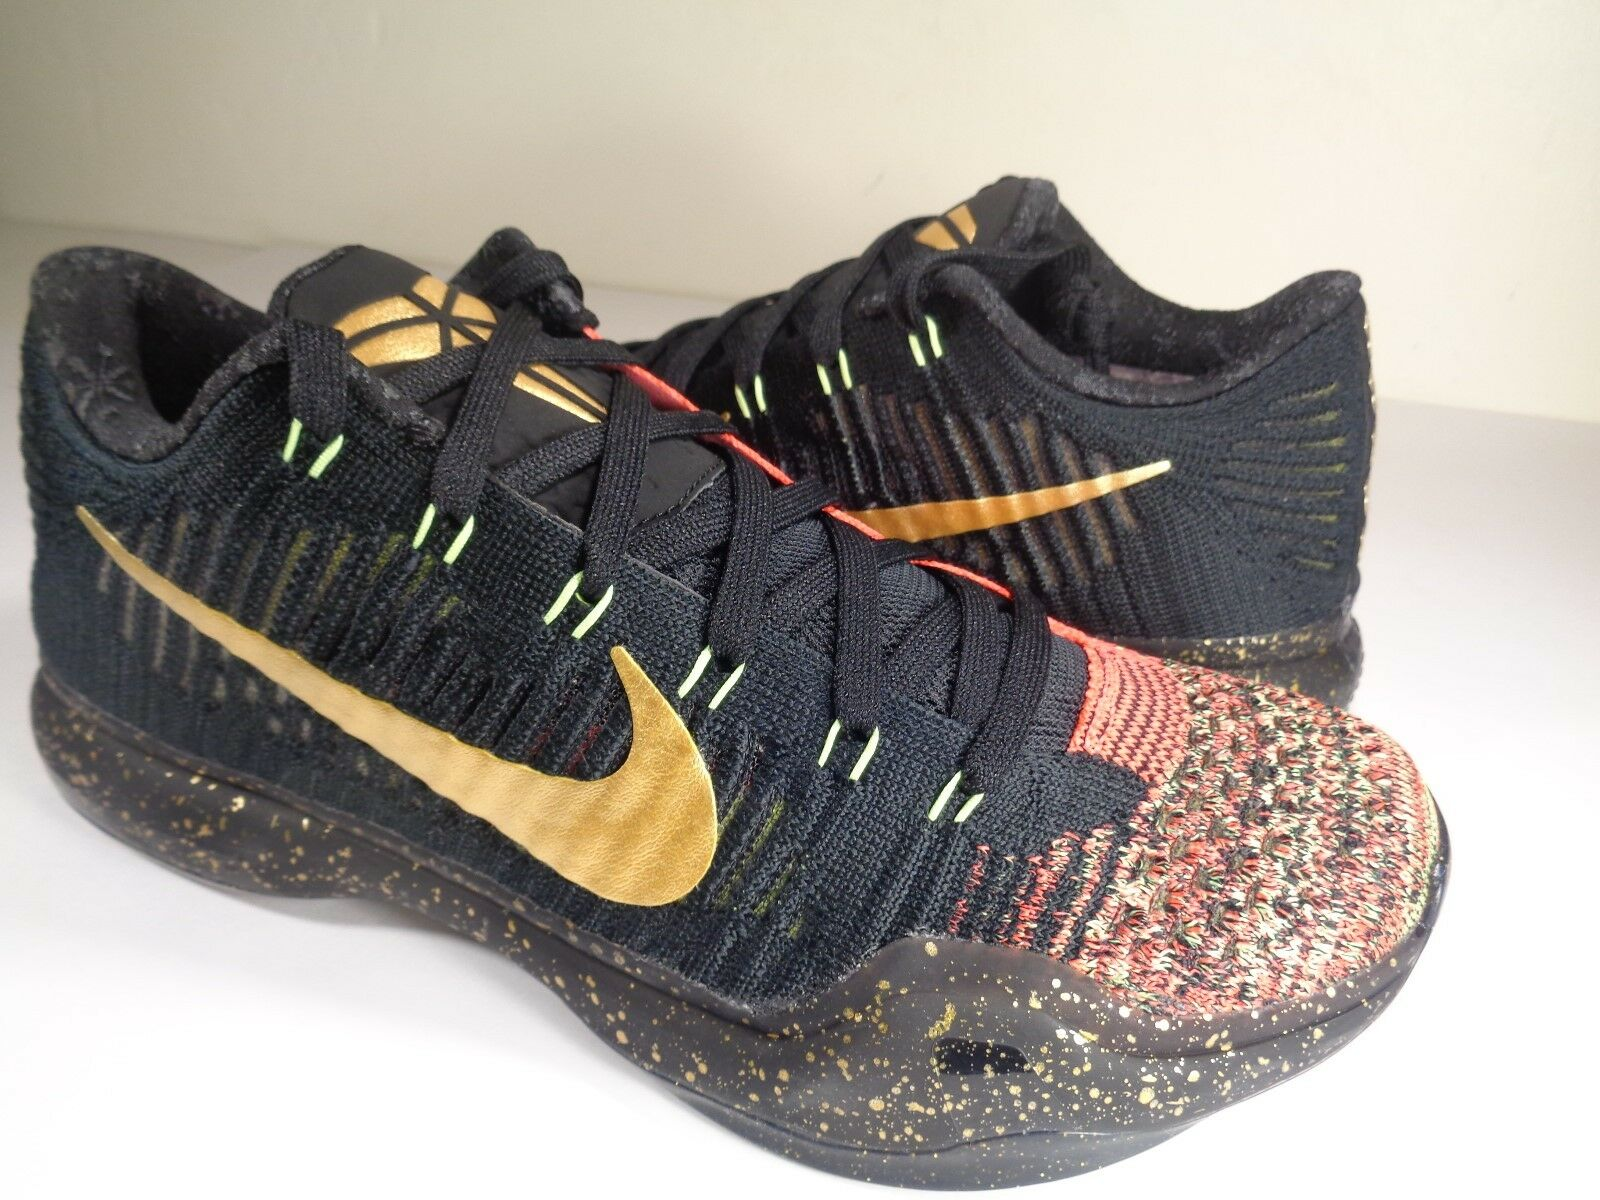 Nike Kobe 10 X Elite Low Christmas 5 Rings Gold Black Red Price reduction Comfortable and good-looking